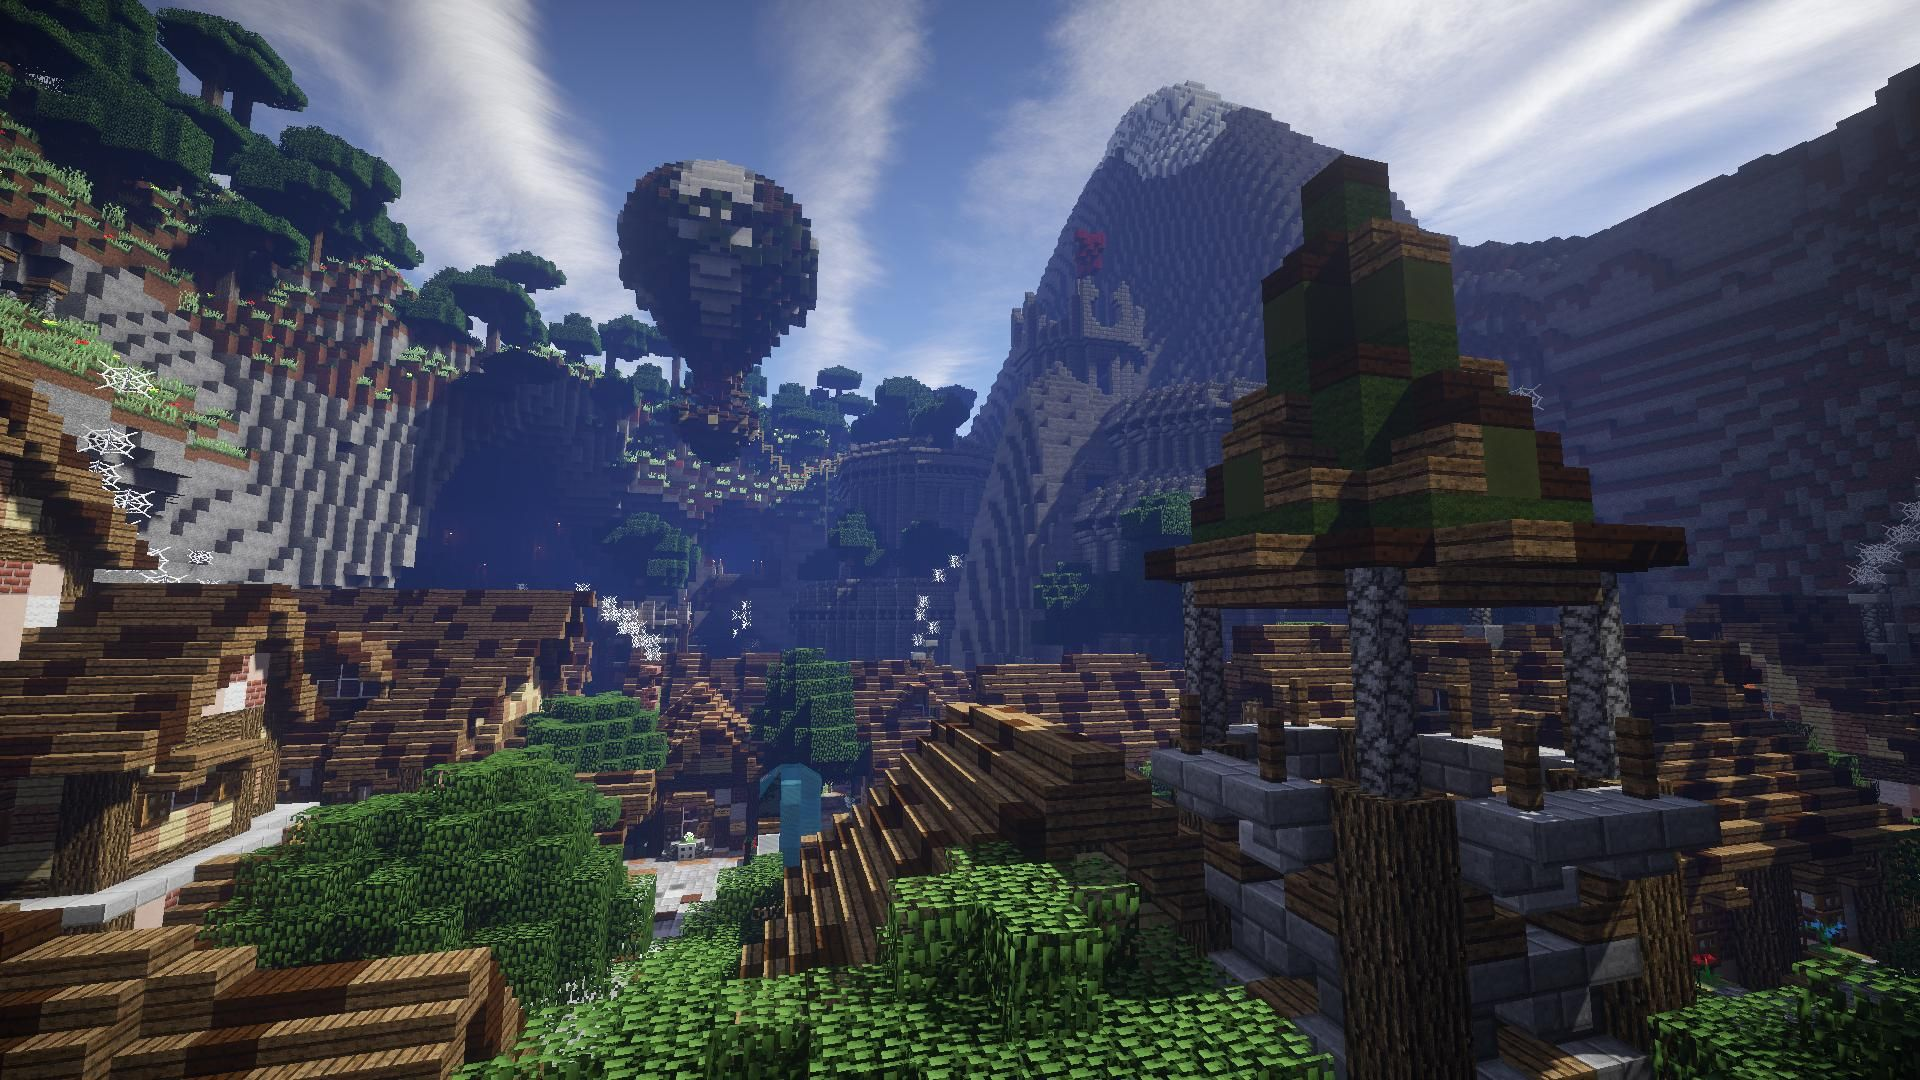 The Landscape Of Minecraft